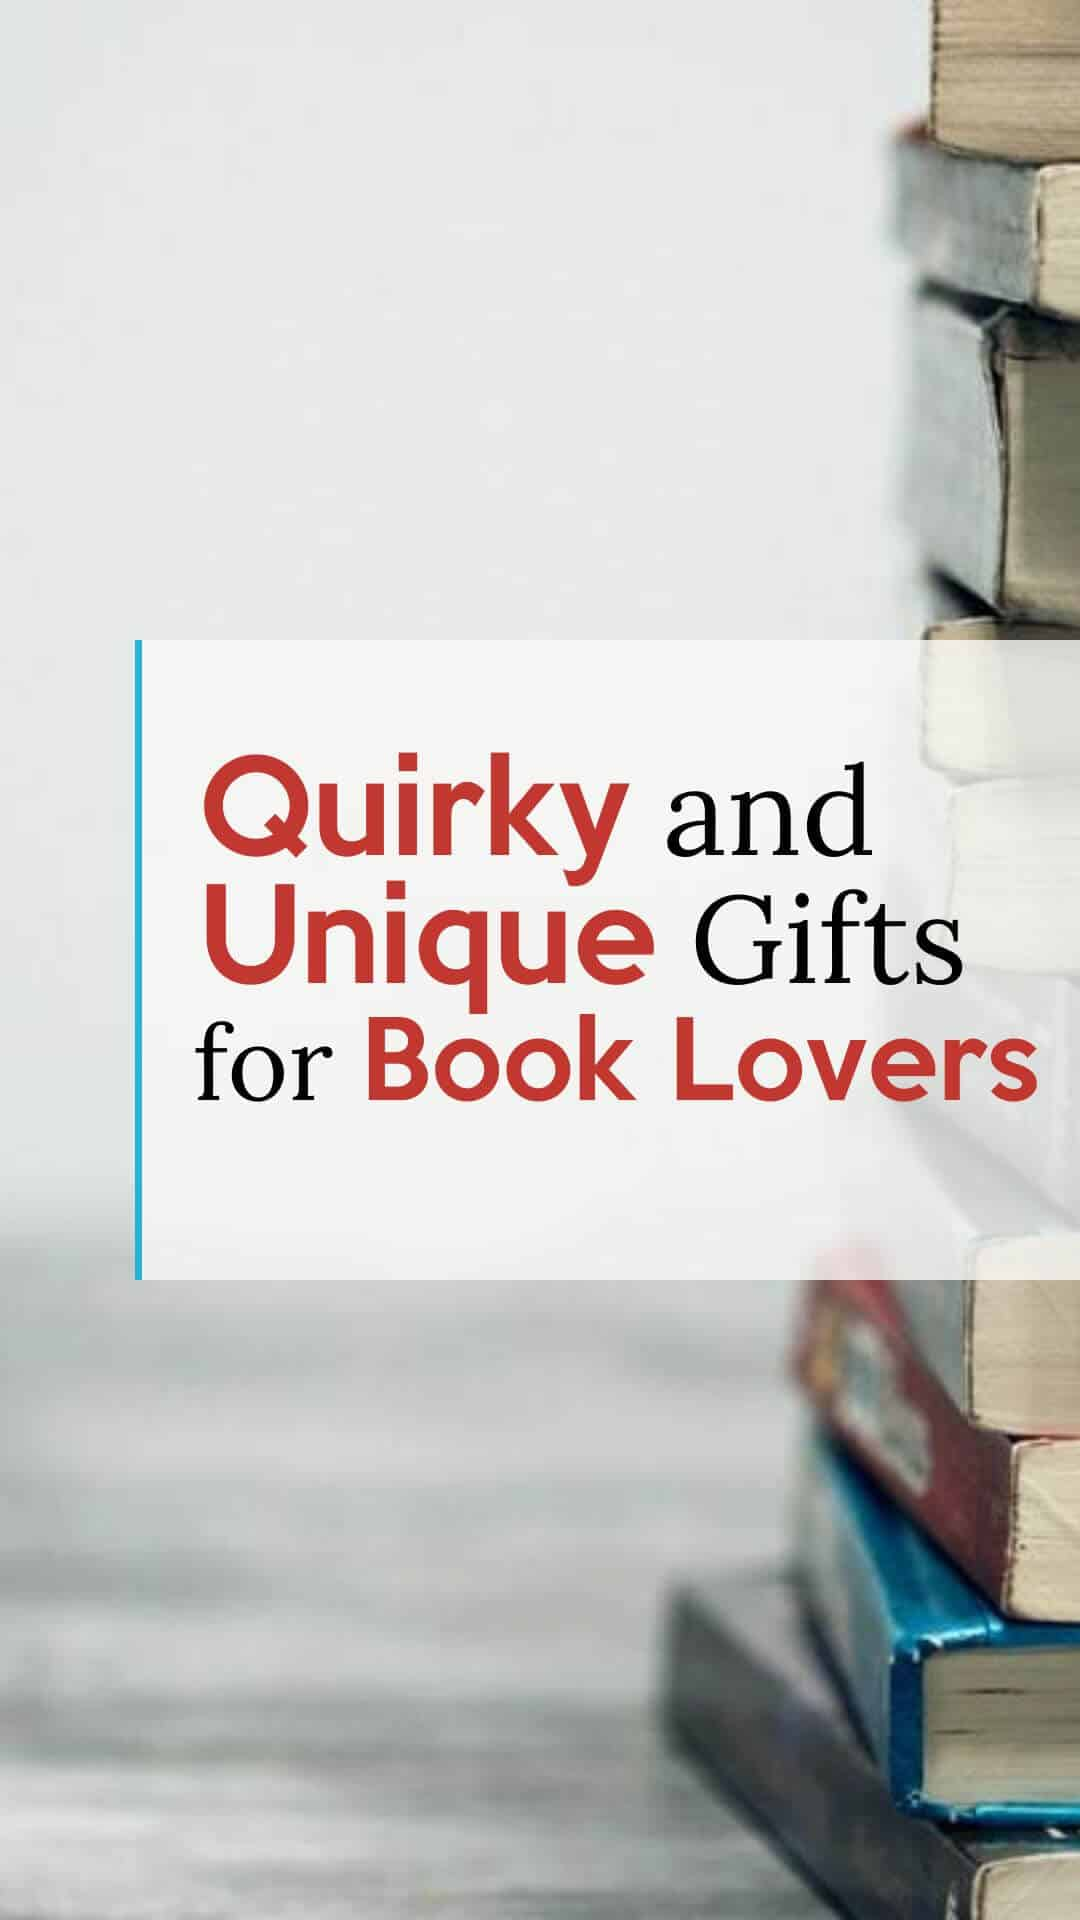 Quirky and Unique Gifts for Book Lovers